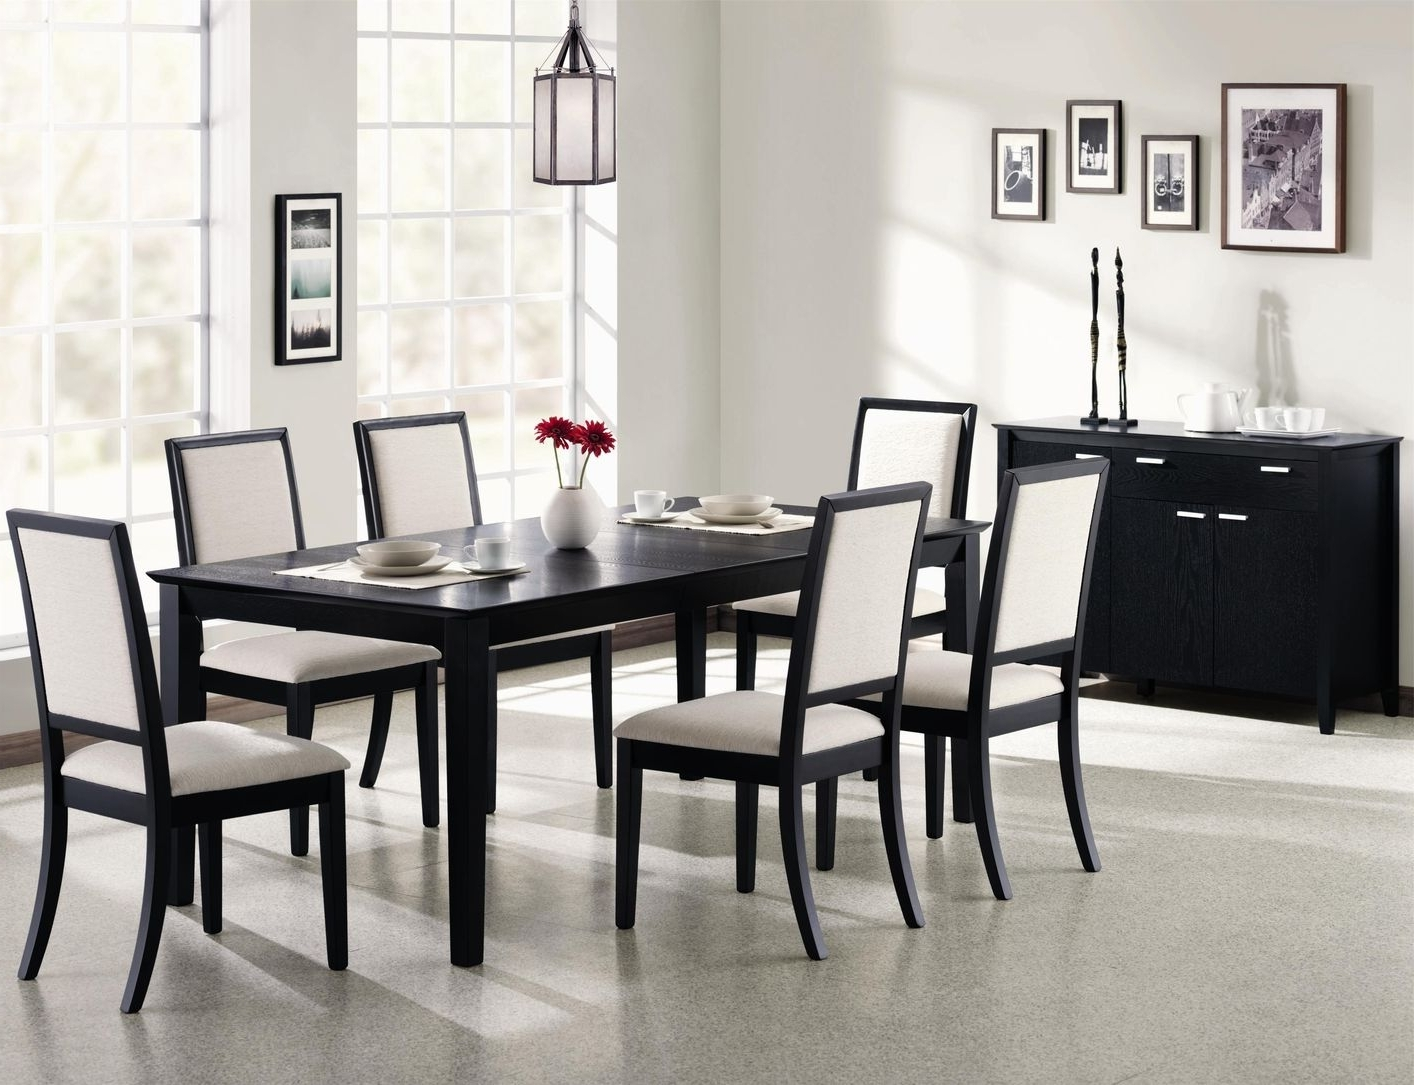 Dark Wooden Dining Tables In Most Recently Released Louise Black Wood Dining Table Set – Steal A Sofa Furniture Outlet (View 5 of 25)